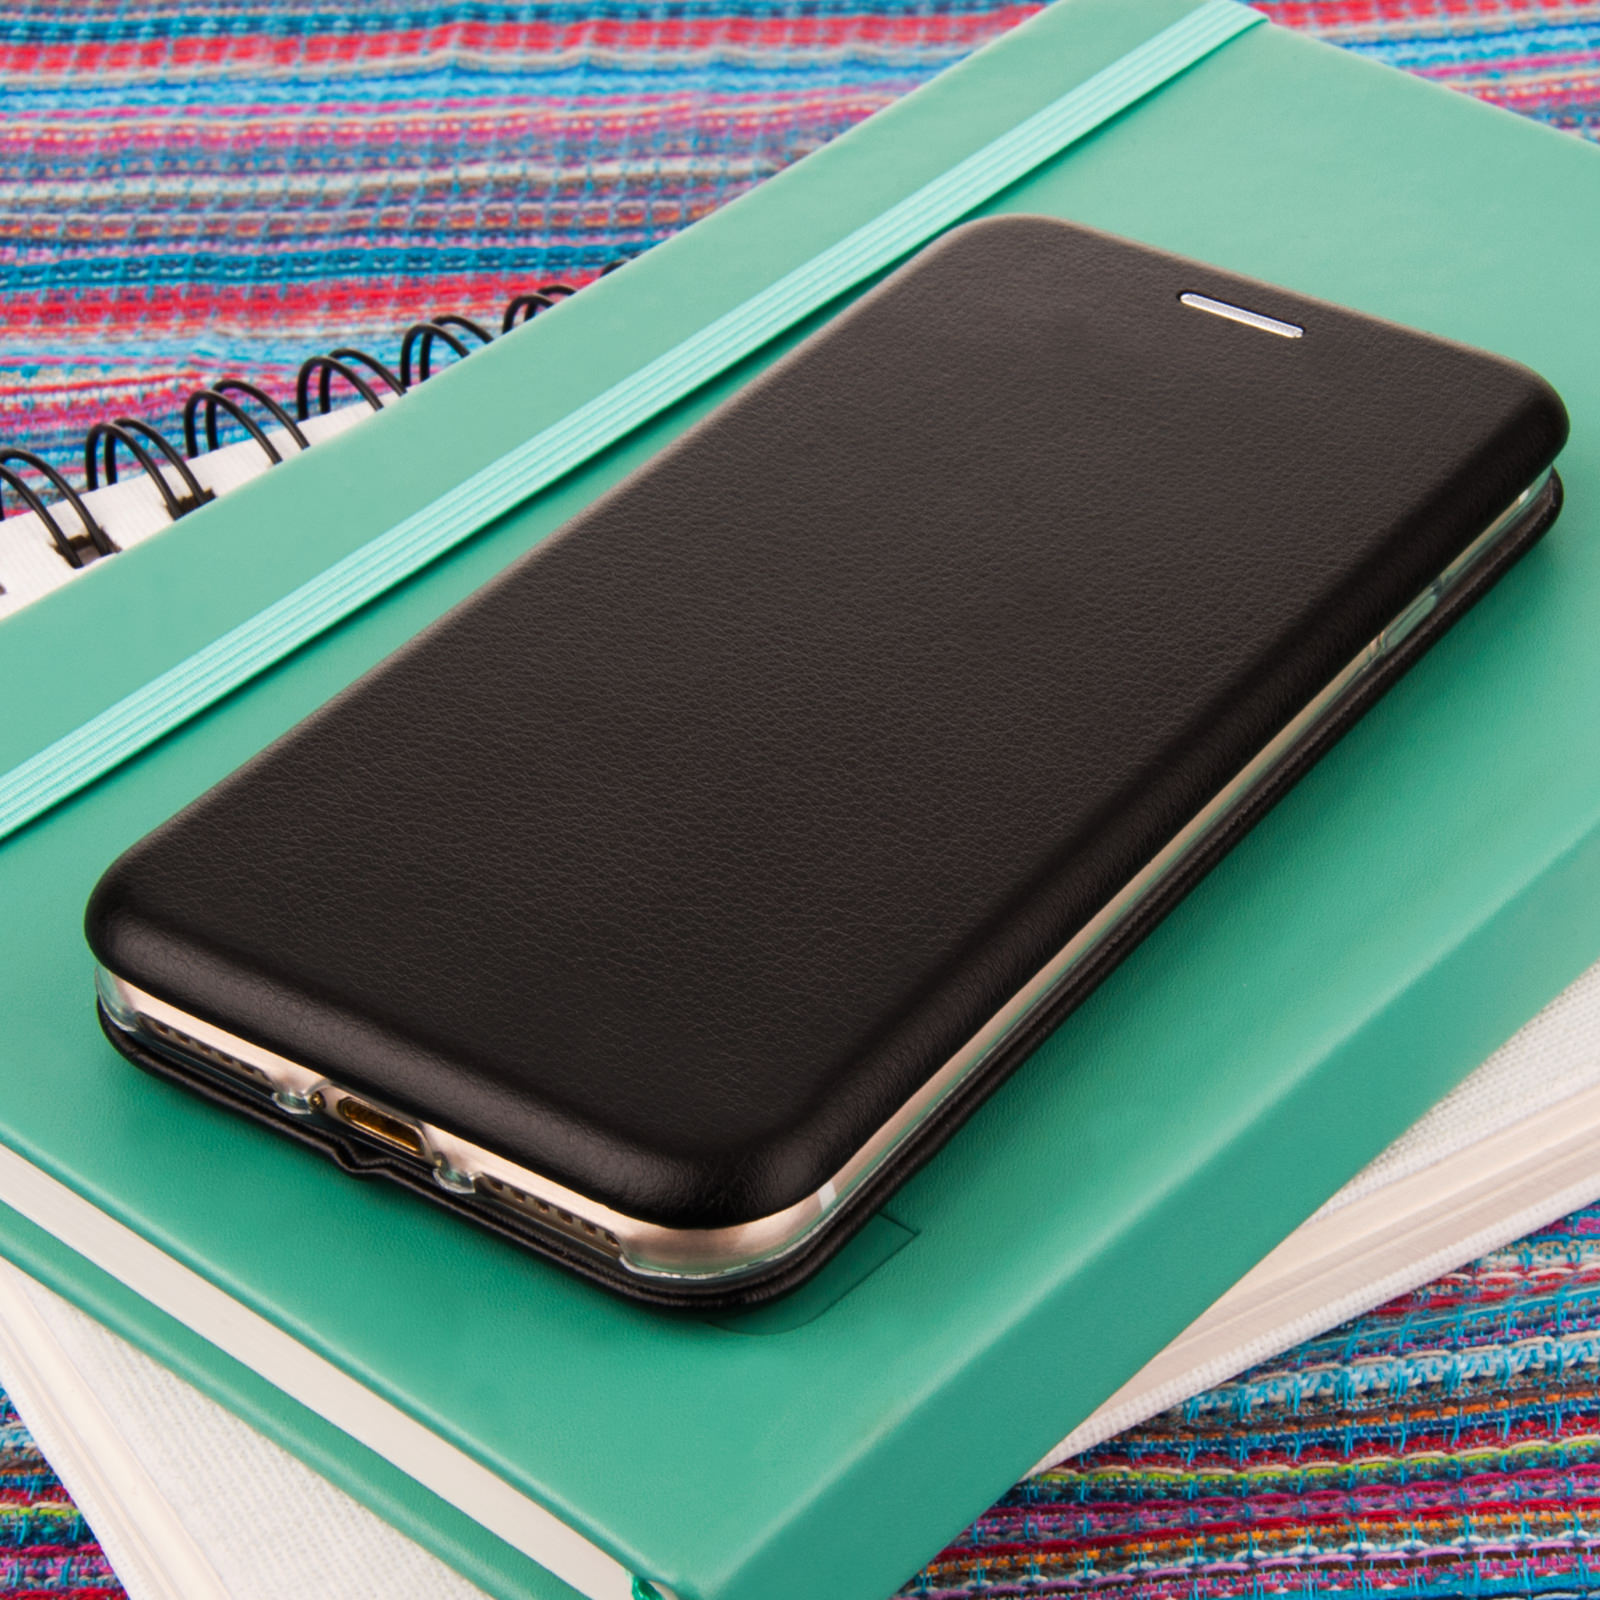 YouSave Accessories iPhone 7 Leather-Effect Stand Wallet Case - Black